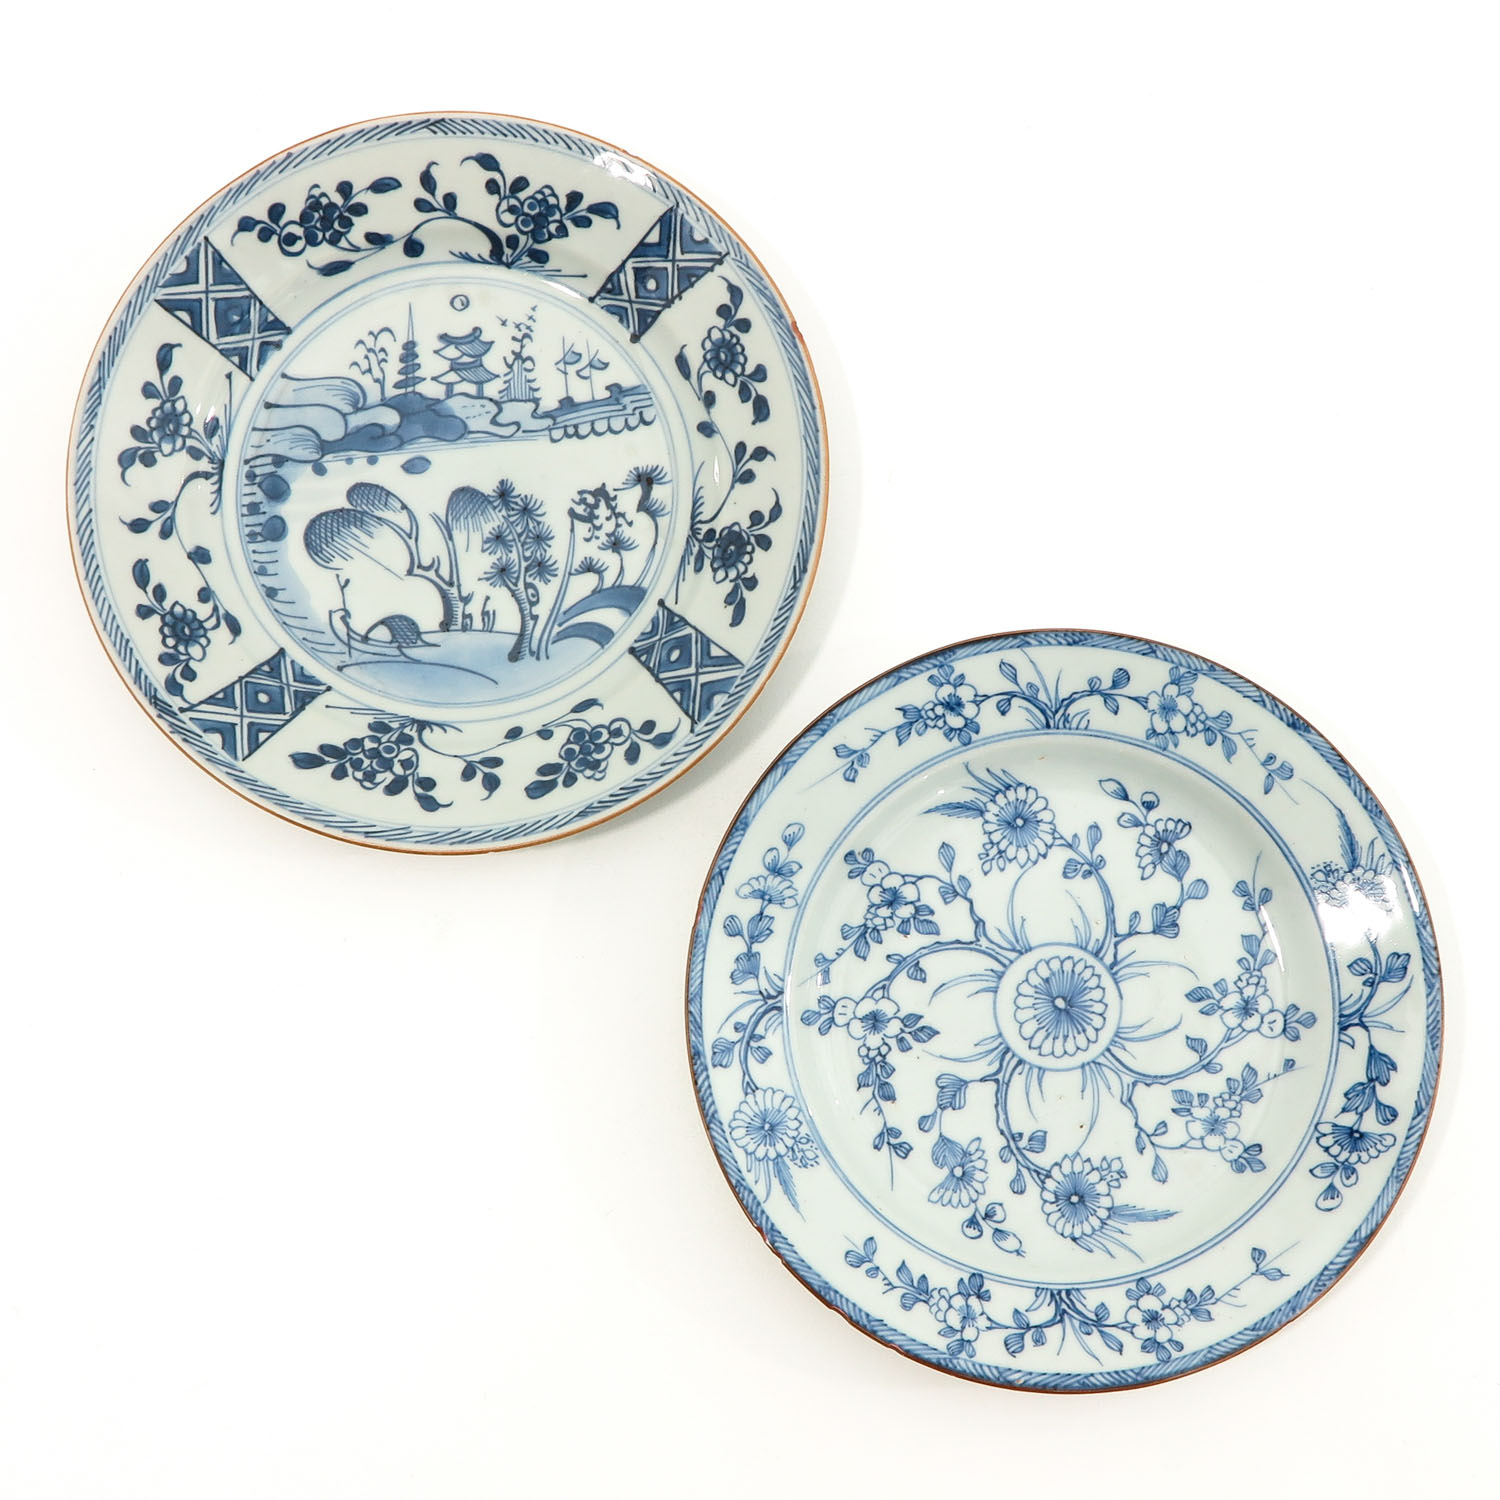 A Series of 6 Blue and White Plates - Image 3 of 10